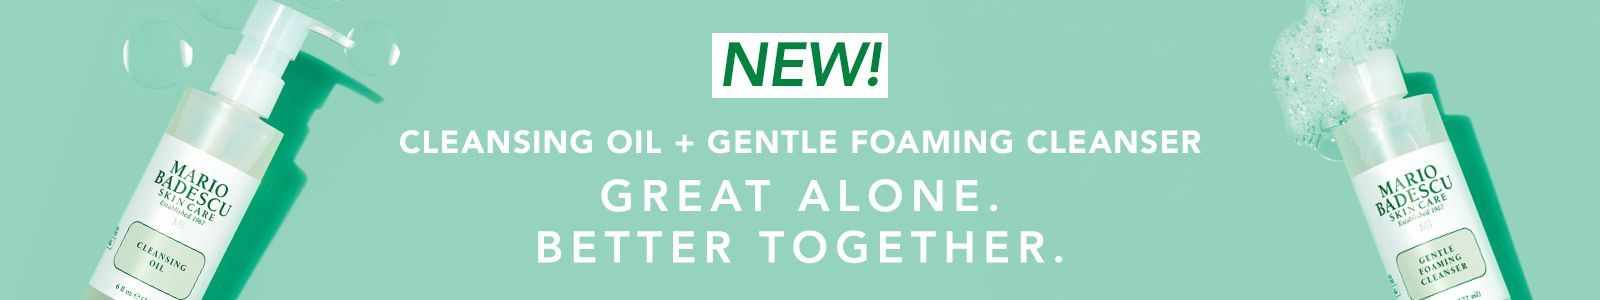 New! Cleansing Oil + Gentle Foaming Cleanser, Great Alone, Better Together